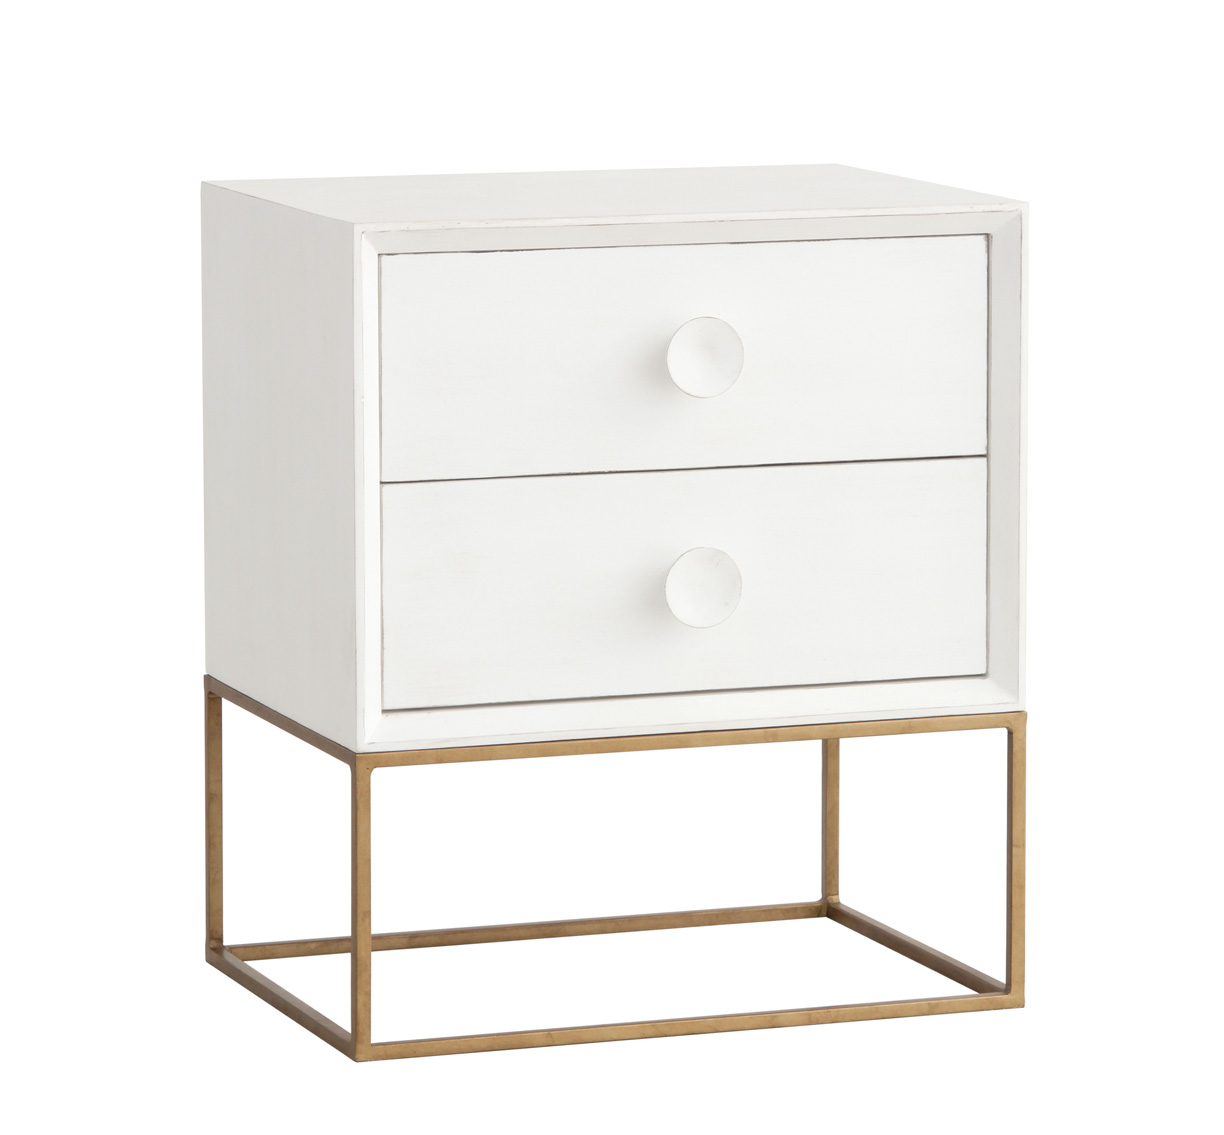 furniture modern nightstand for elegant bedside storage design inch wide white nightstands target table tables narrow drawers antique side drawer accent driftwood end west elm